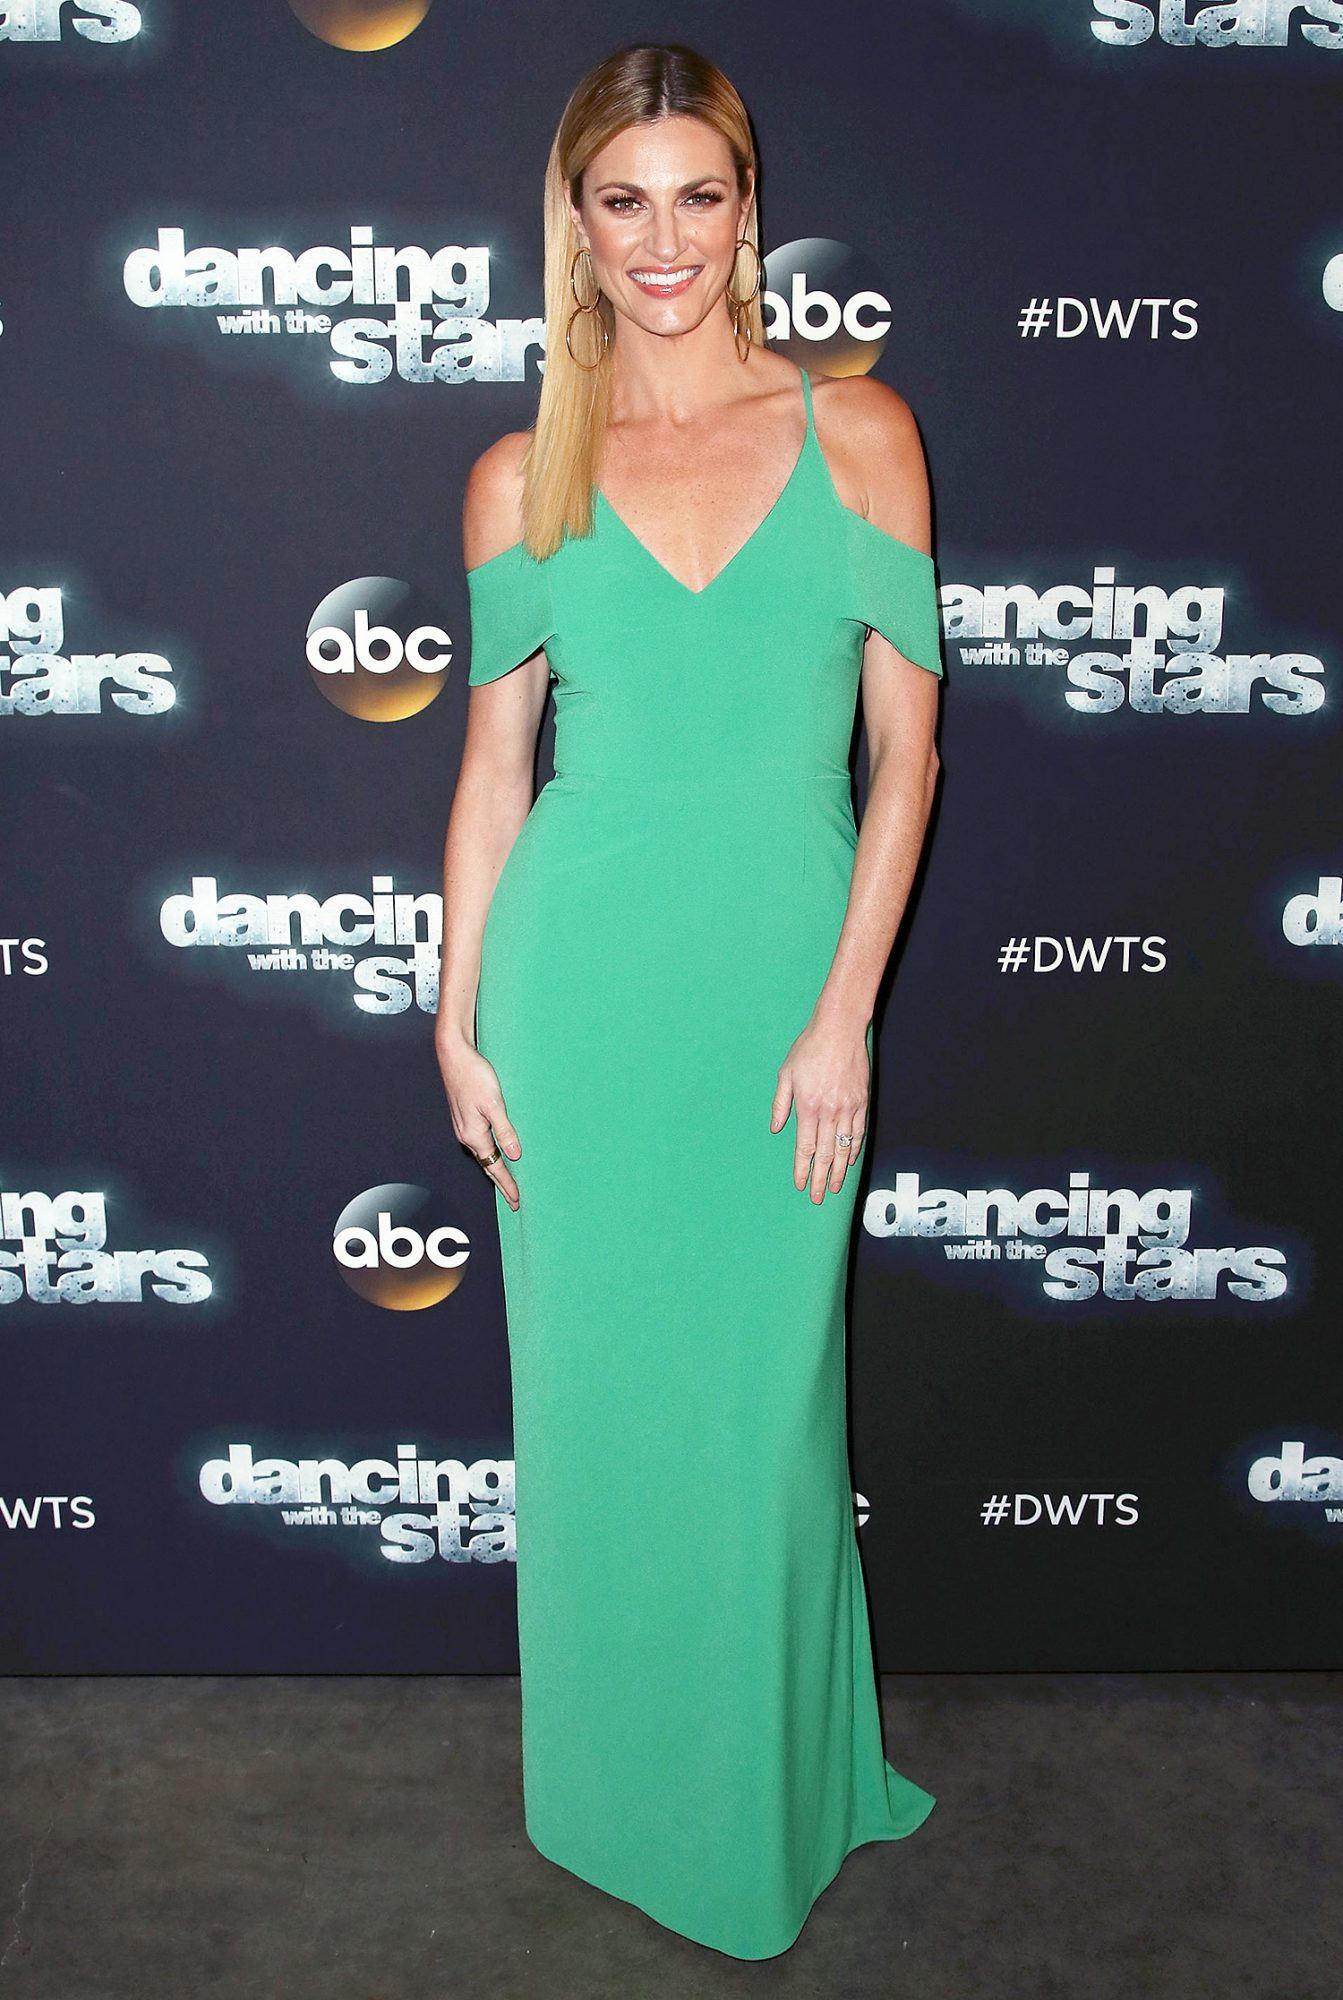 """Dancing With The Stars"" Season 24 - May 8, 2017 - Arrivals"